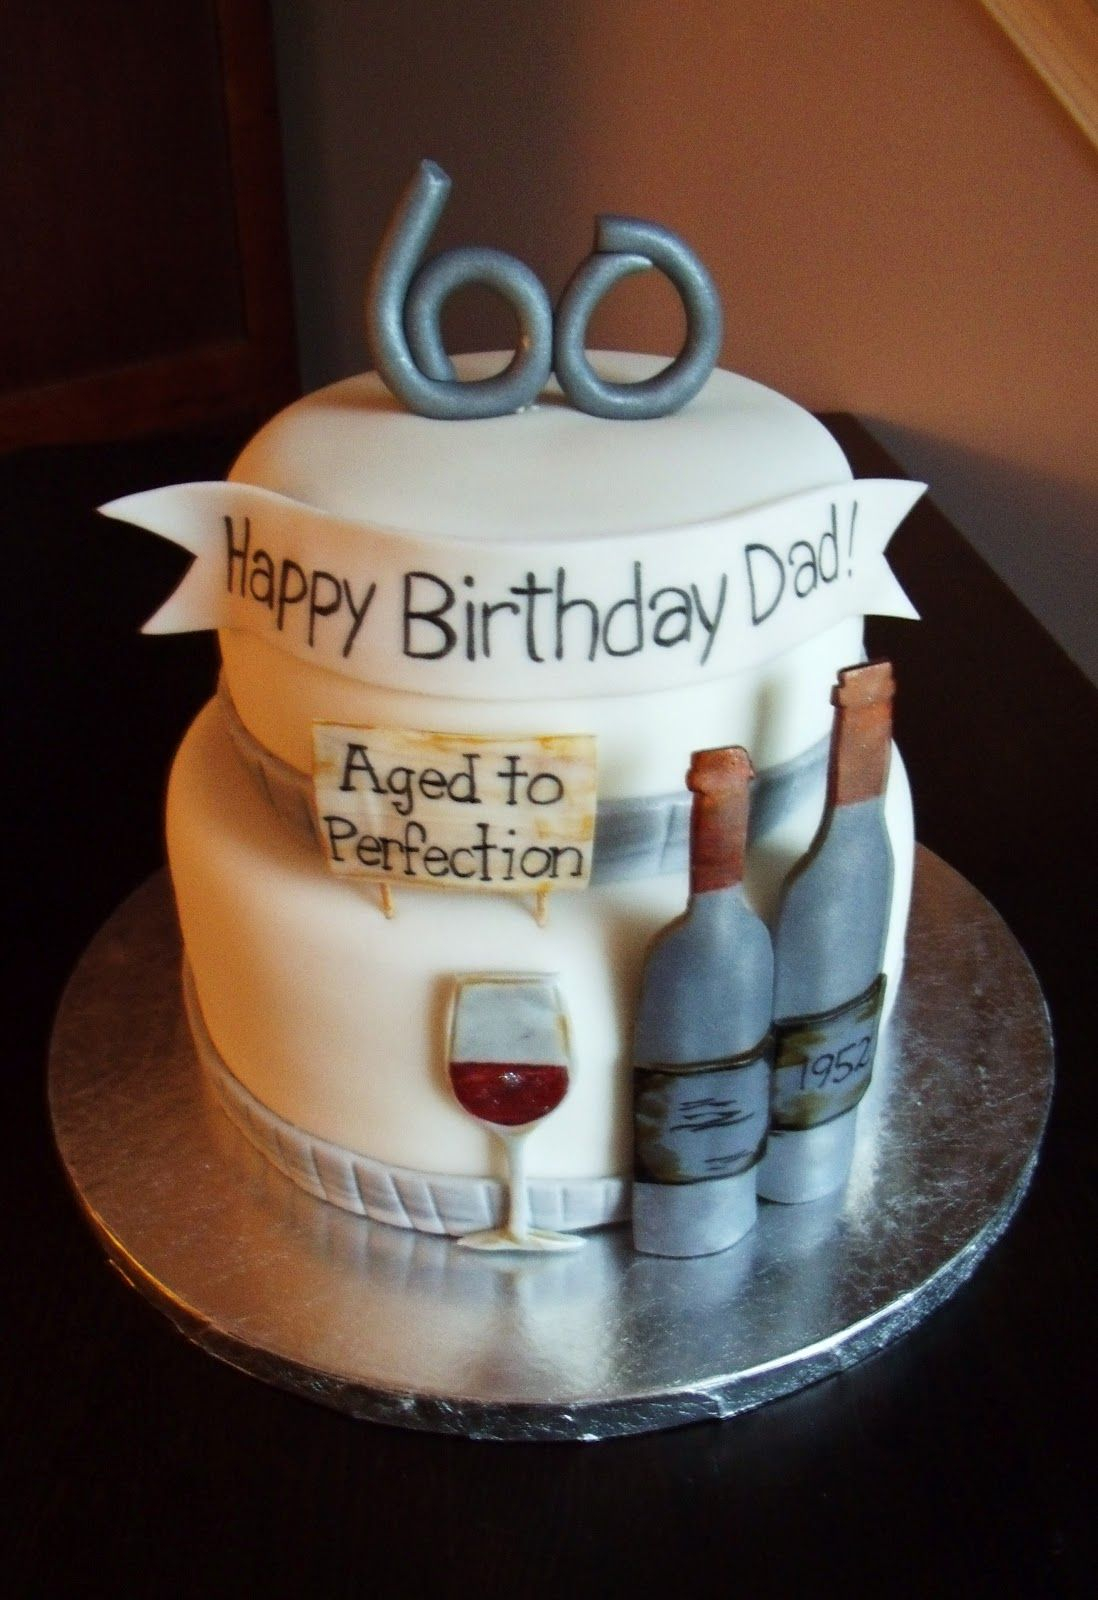 Happy Birthday Dad Cake 60th Party Ideas Google Search Big Parties Pinterest